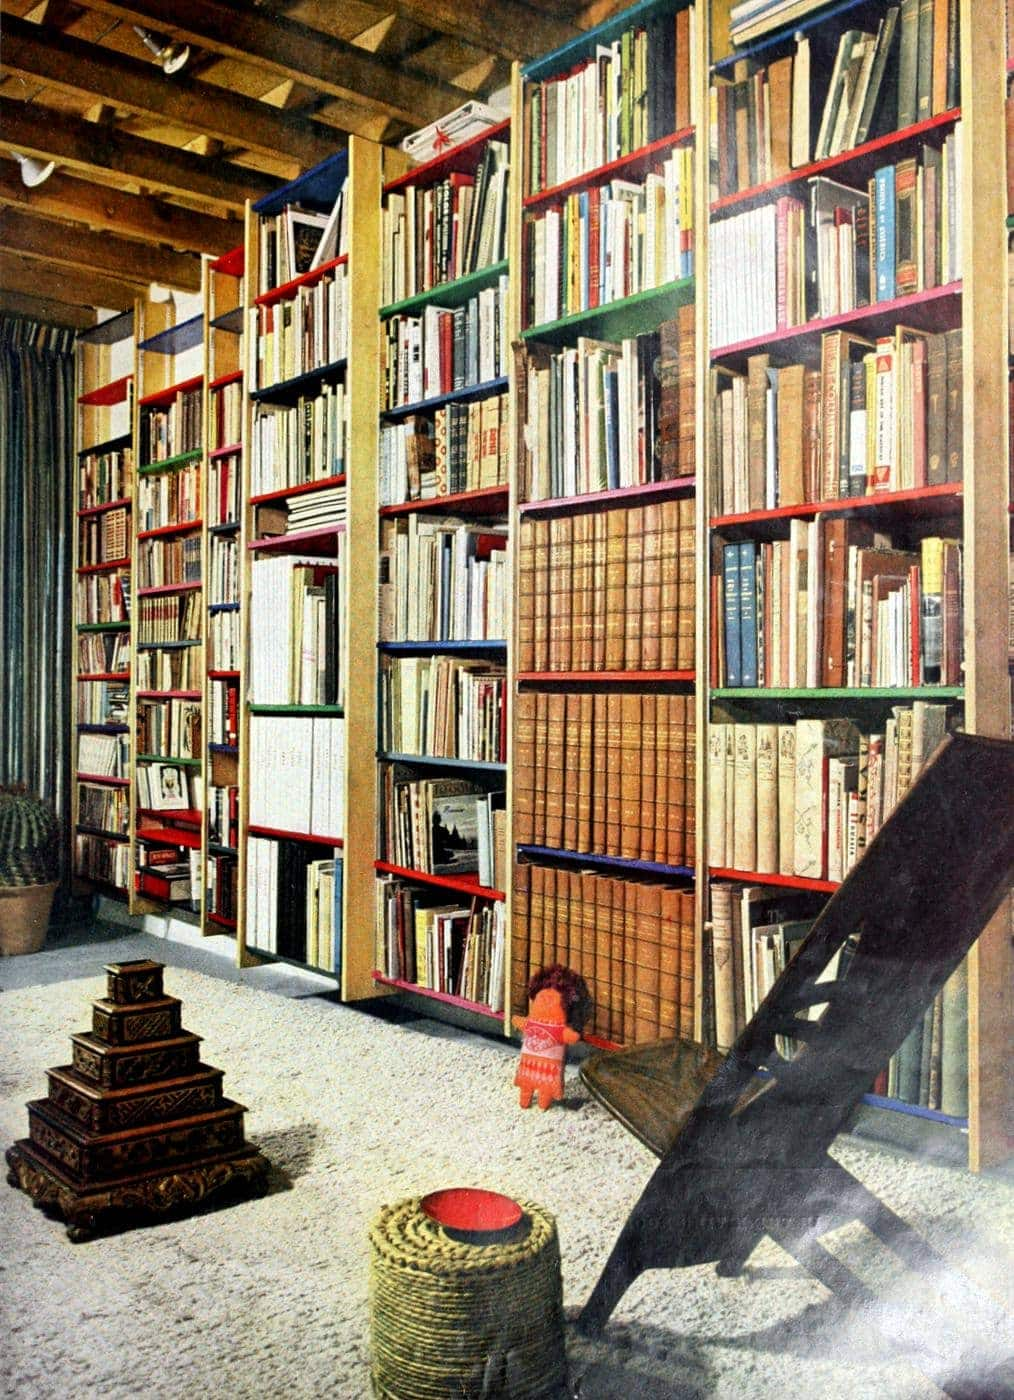 Vintage bookcases from 1959